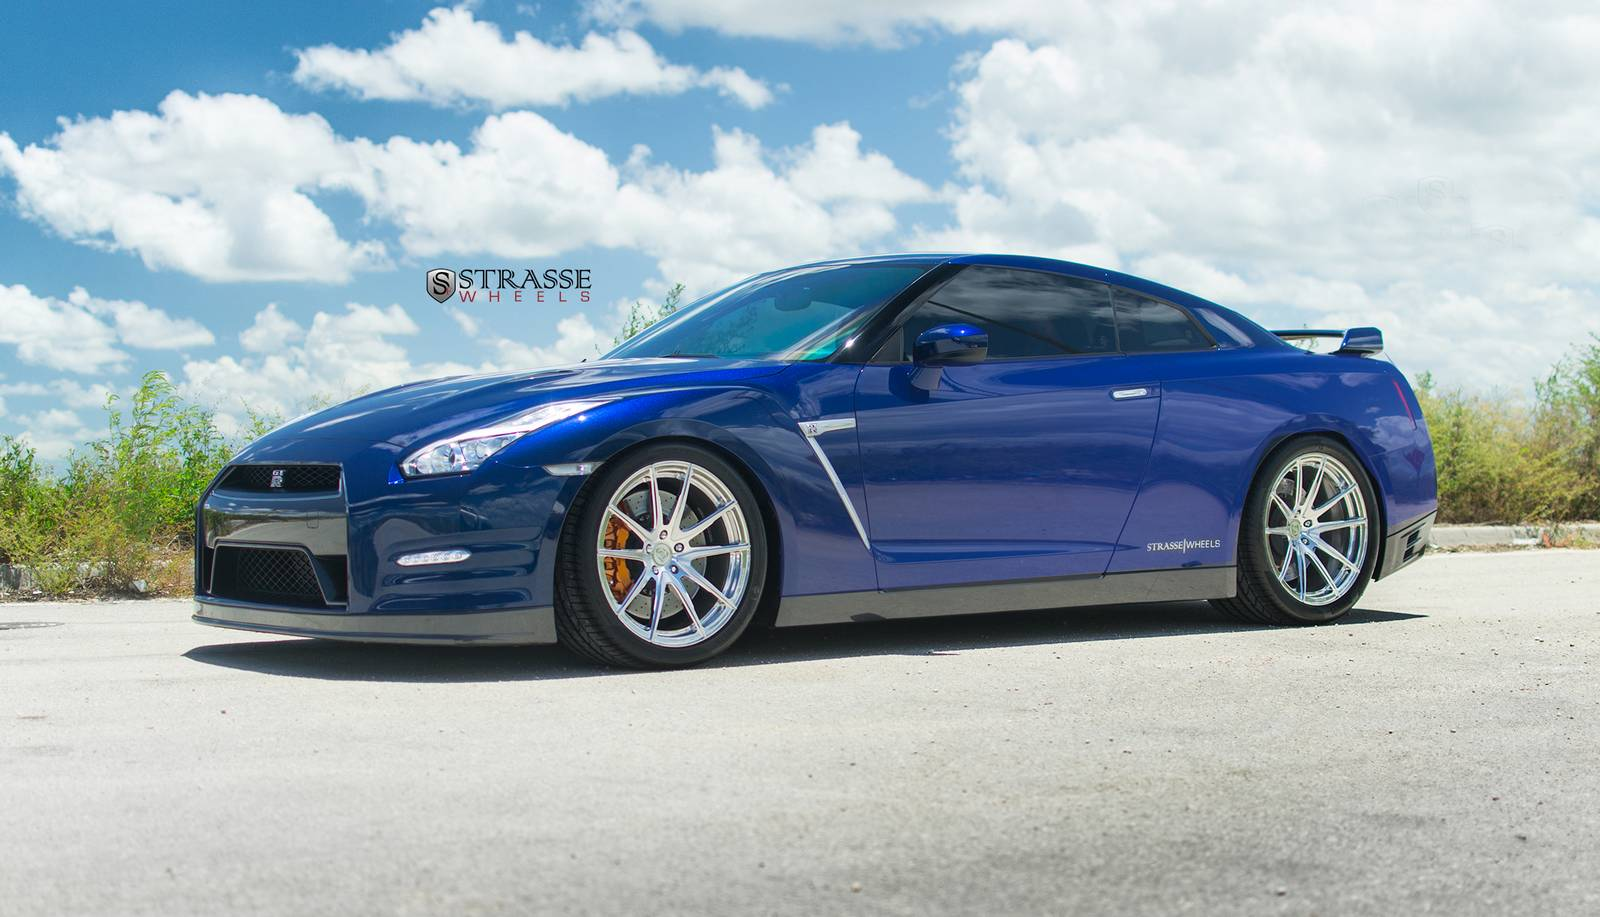 Blue Pearl Nissan Gt R With Brushed Aluminum Strasse Wheels Gtspirit Rare